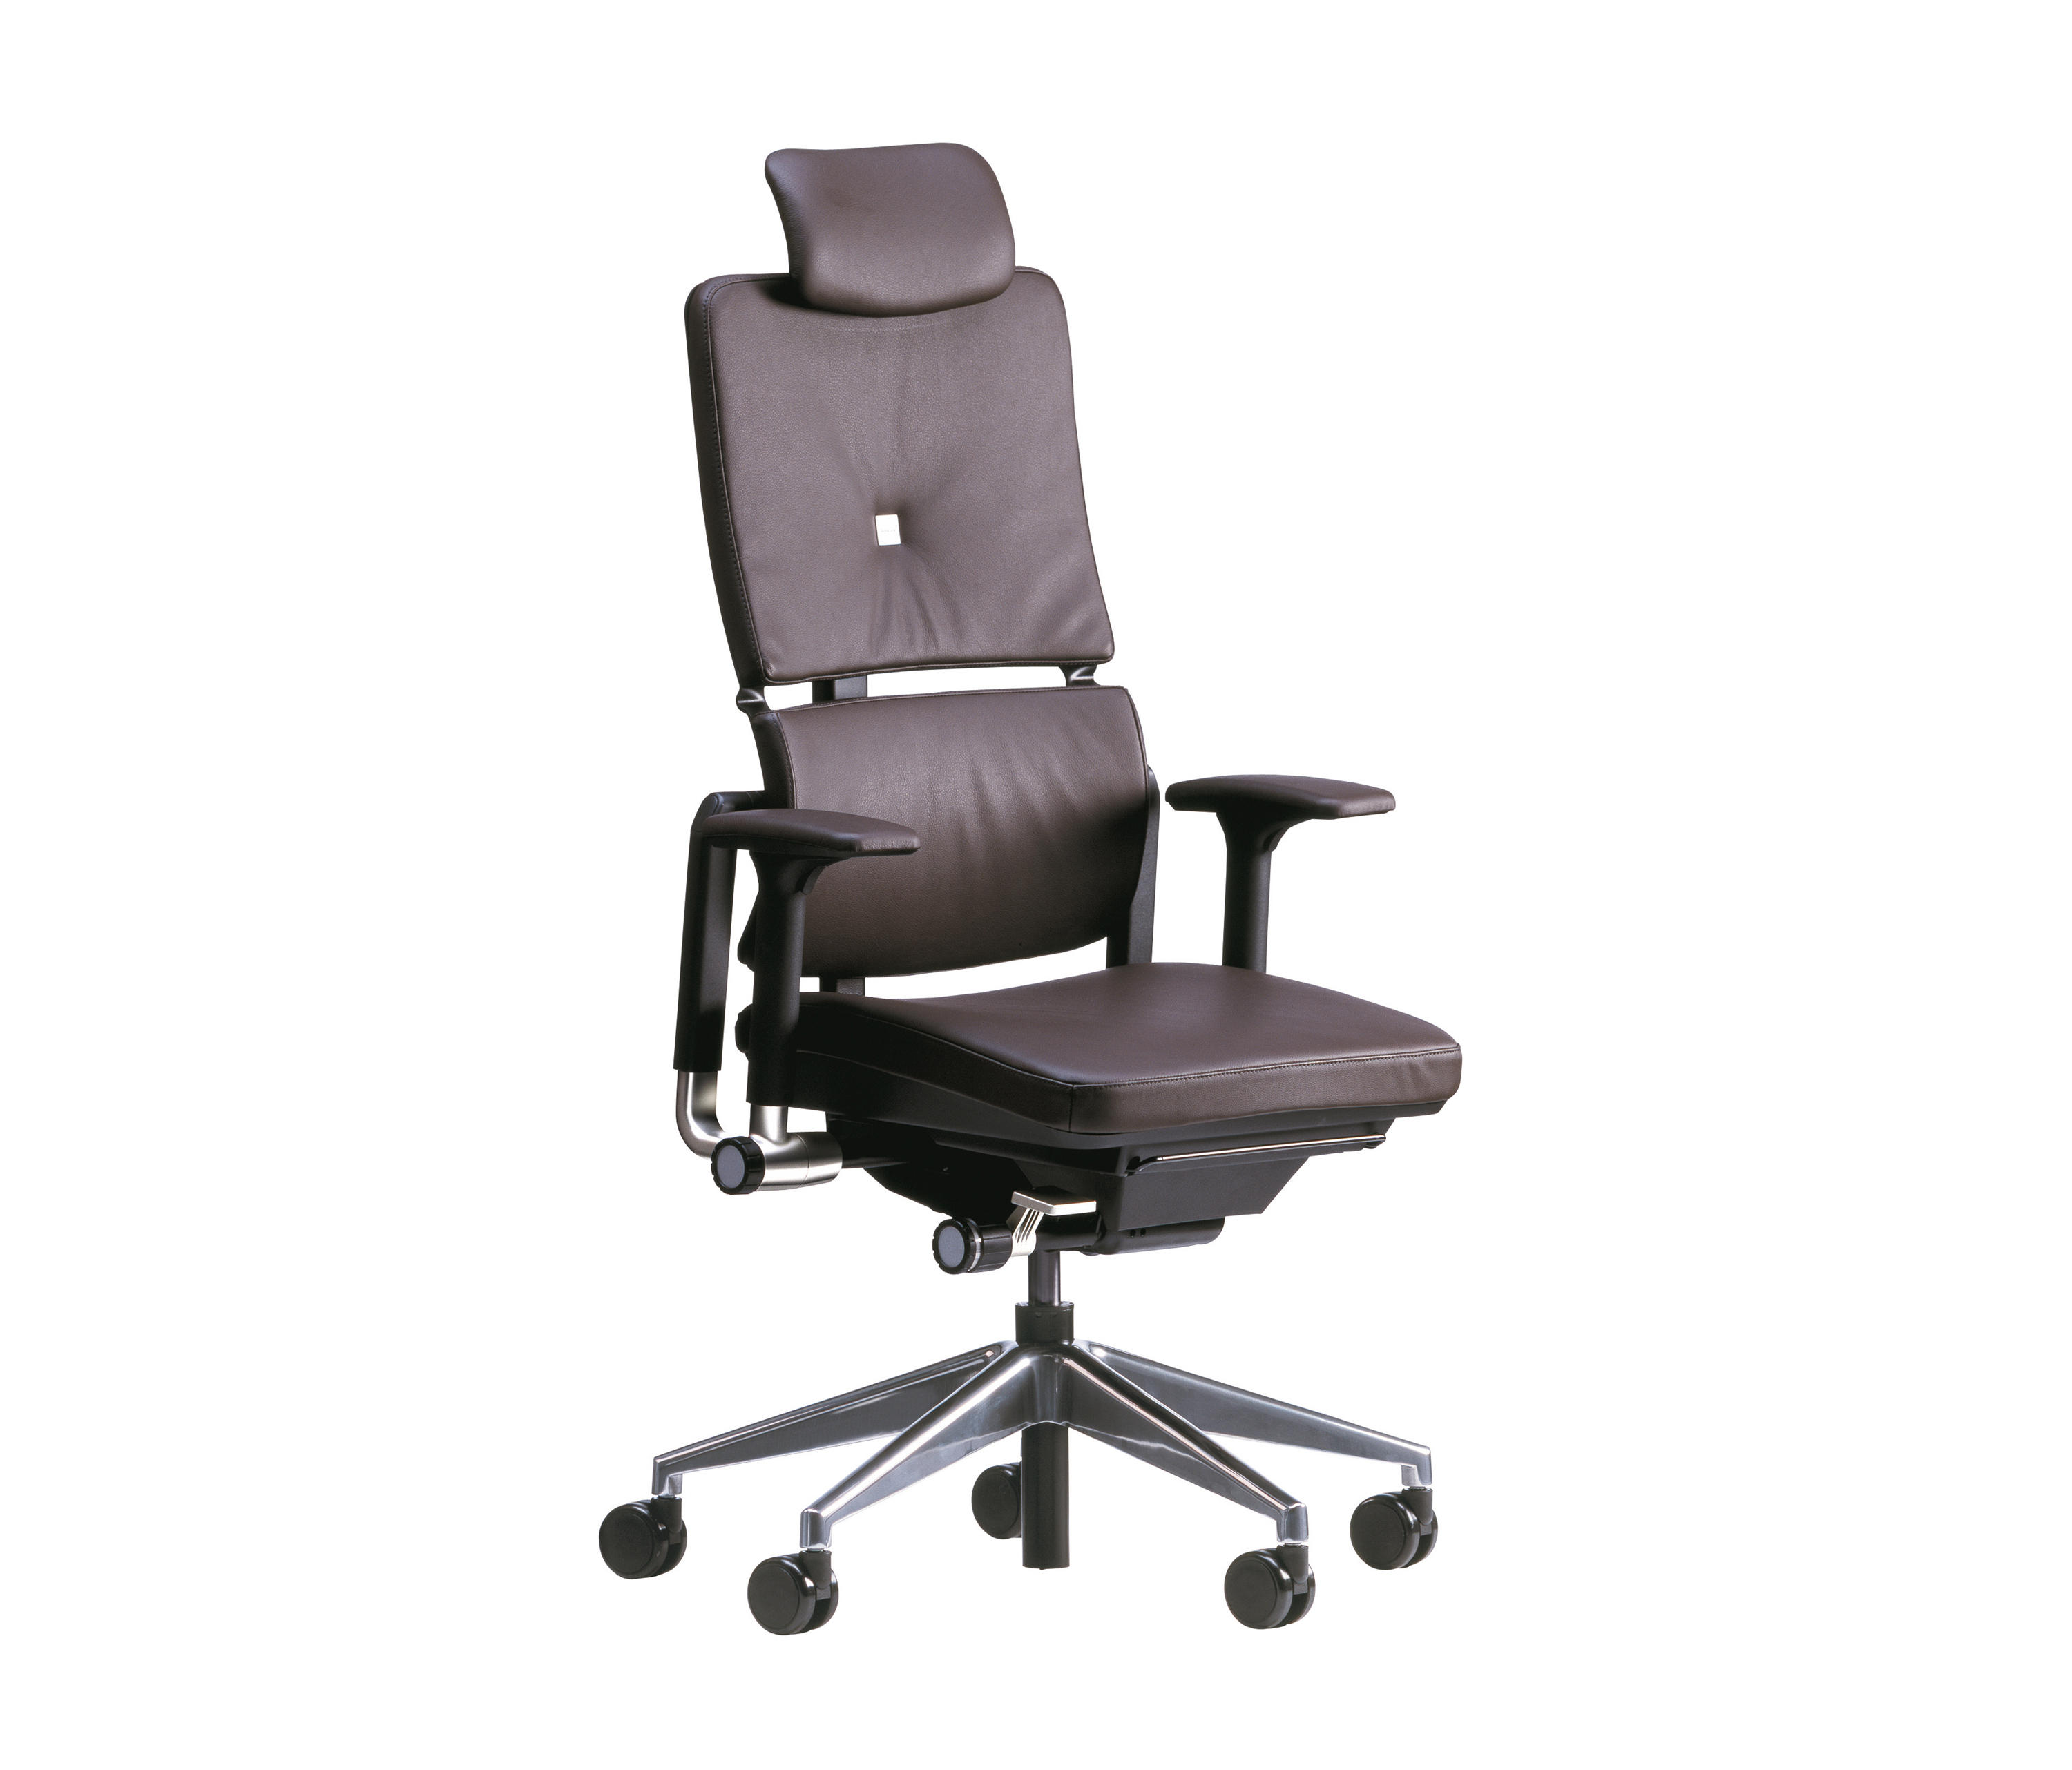 Steelcase Chairs Please Office Chairs From Steelcase Architonic